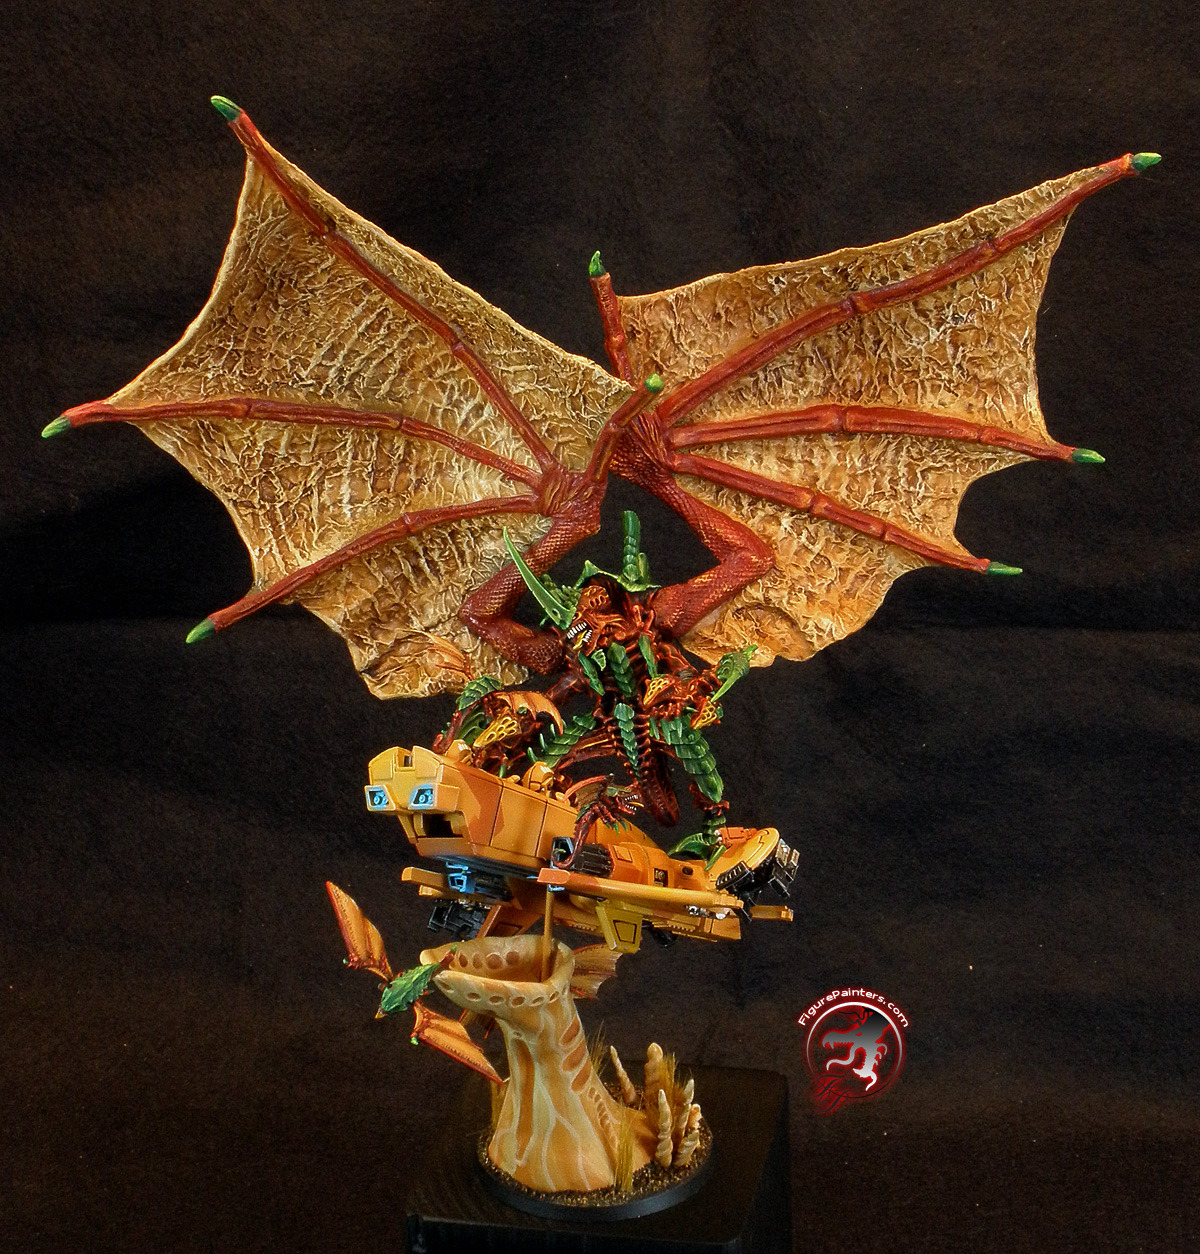 red-flying-hive-tyrant-6.jpg